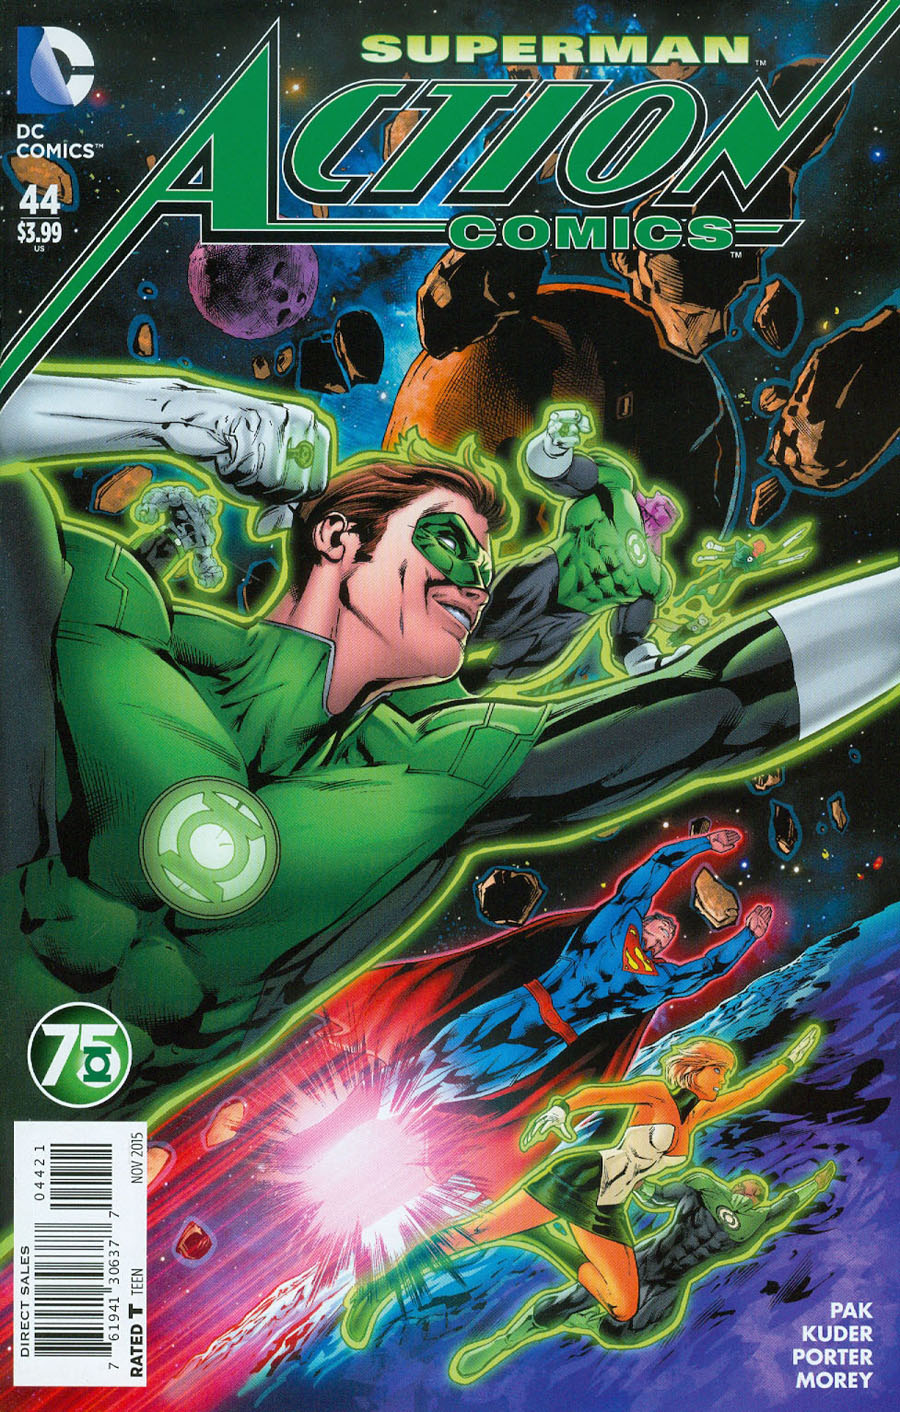 Action Comics Vol 2 #44 Cover B Variant Neil Edwards Green Lantern 75th Anniversary Cover (Truth Tie-In)